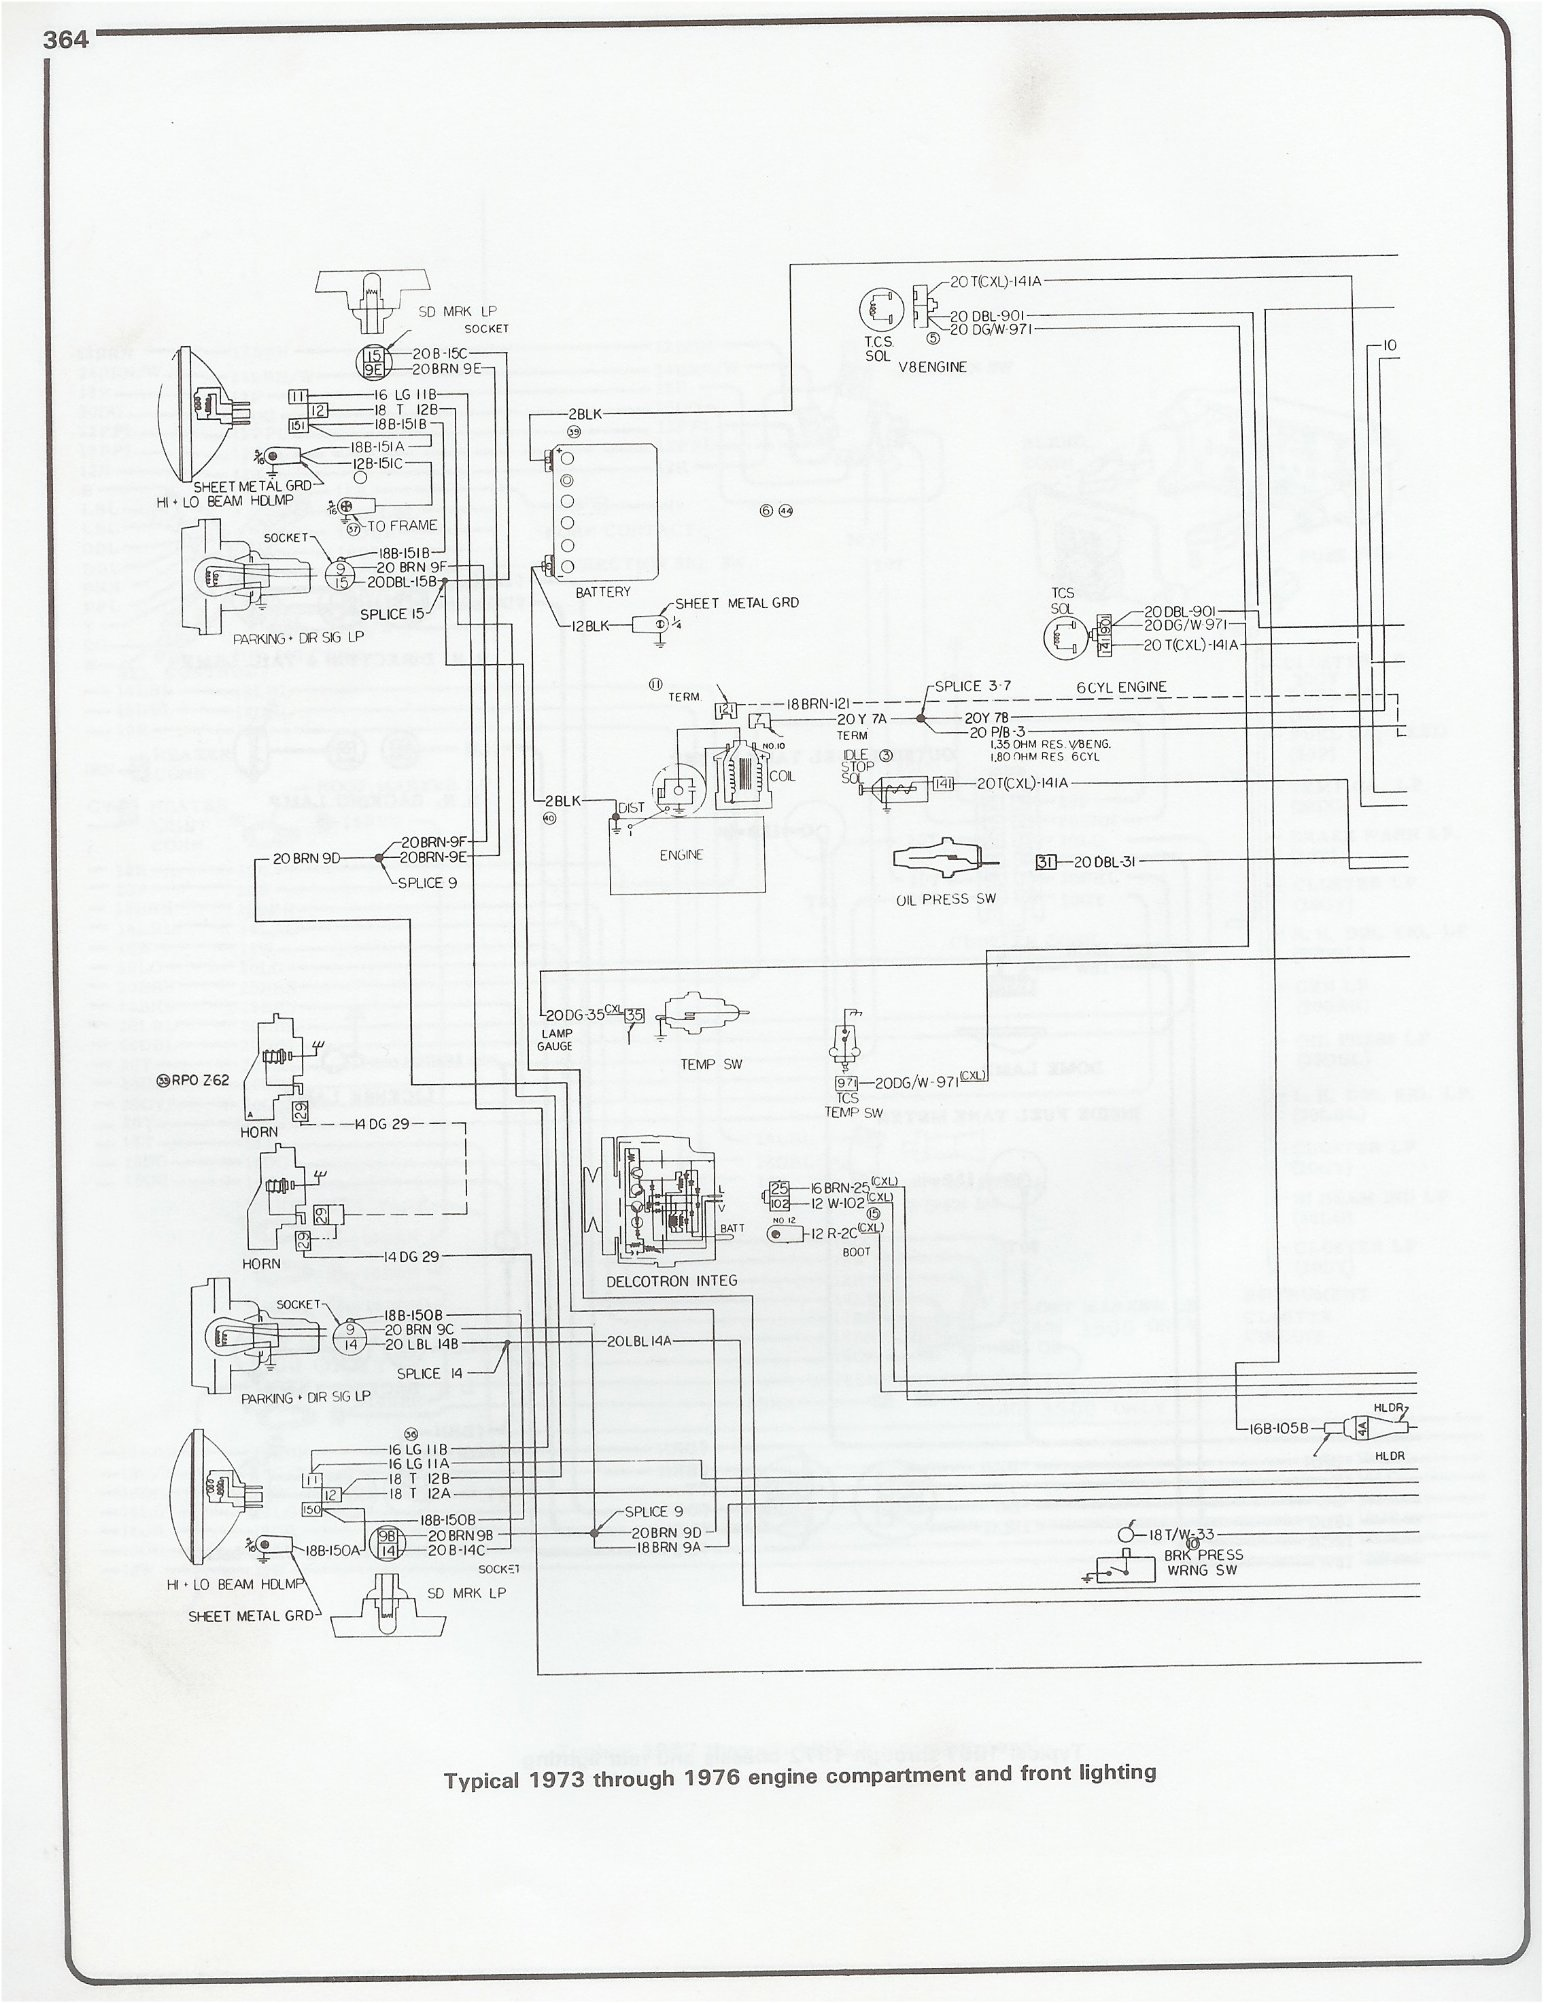 Complete 73 87 Wiring Diagrams 1983 Chevrolet K5 Blazer Black 76 Engine And Front Lighting